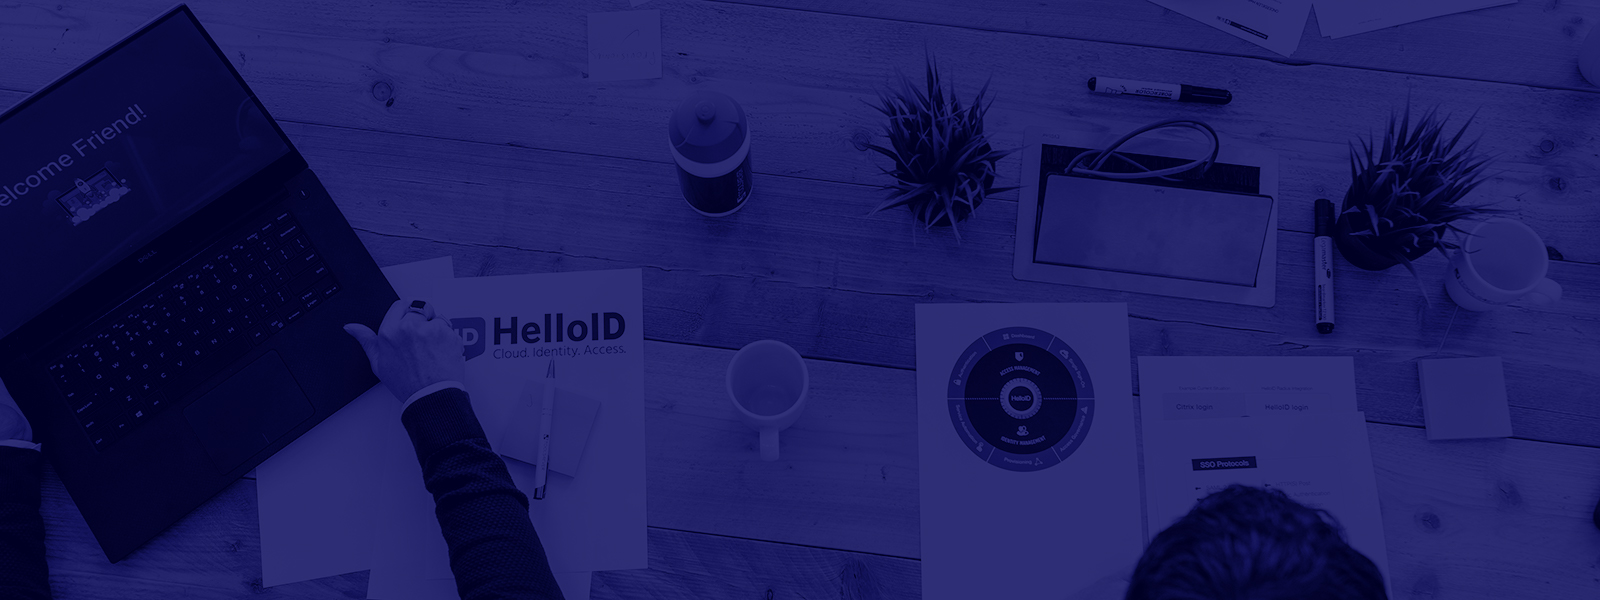 HelloID Fundamentals trainingen